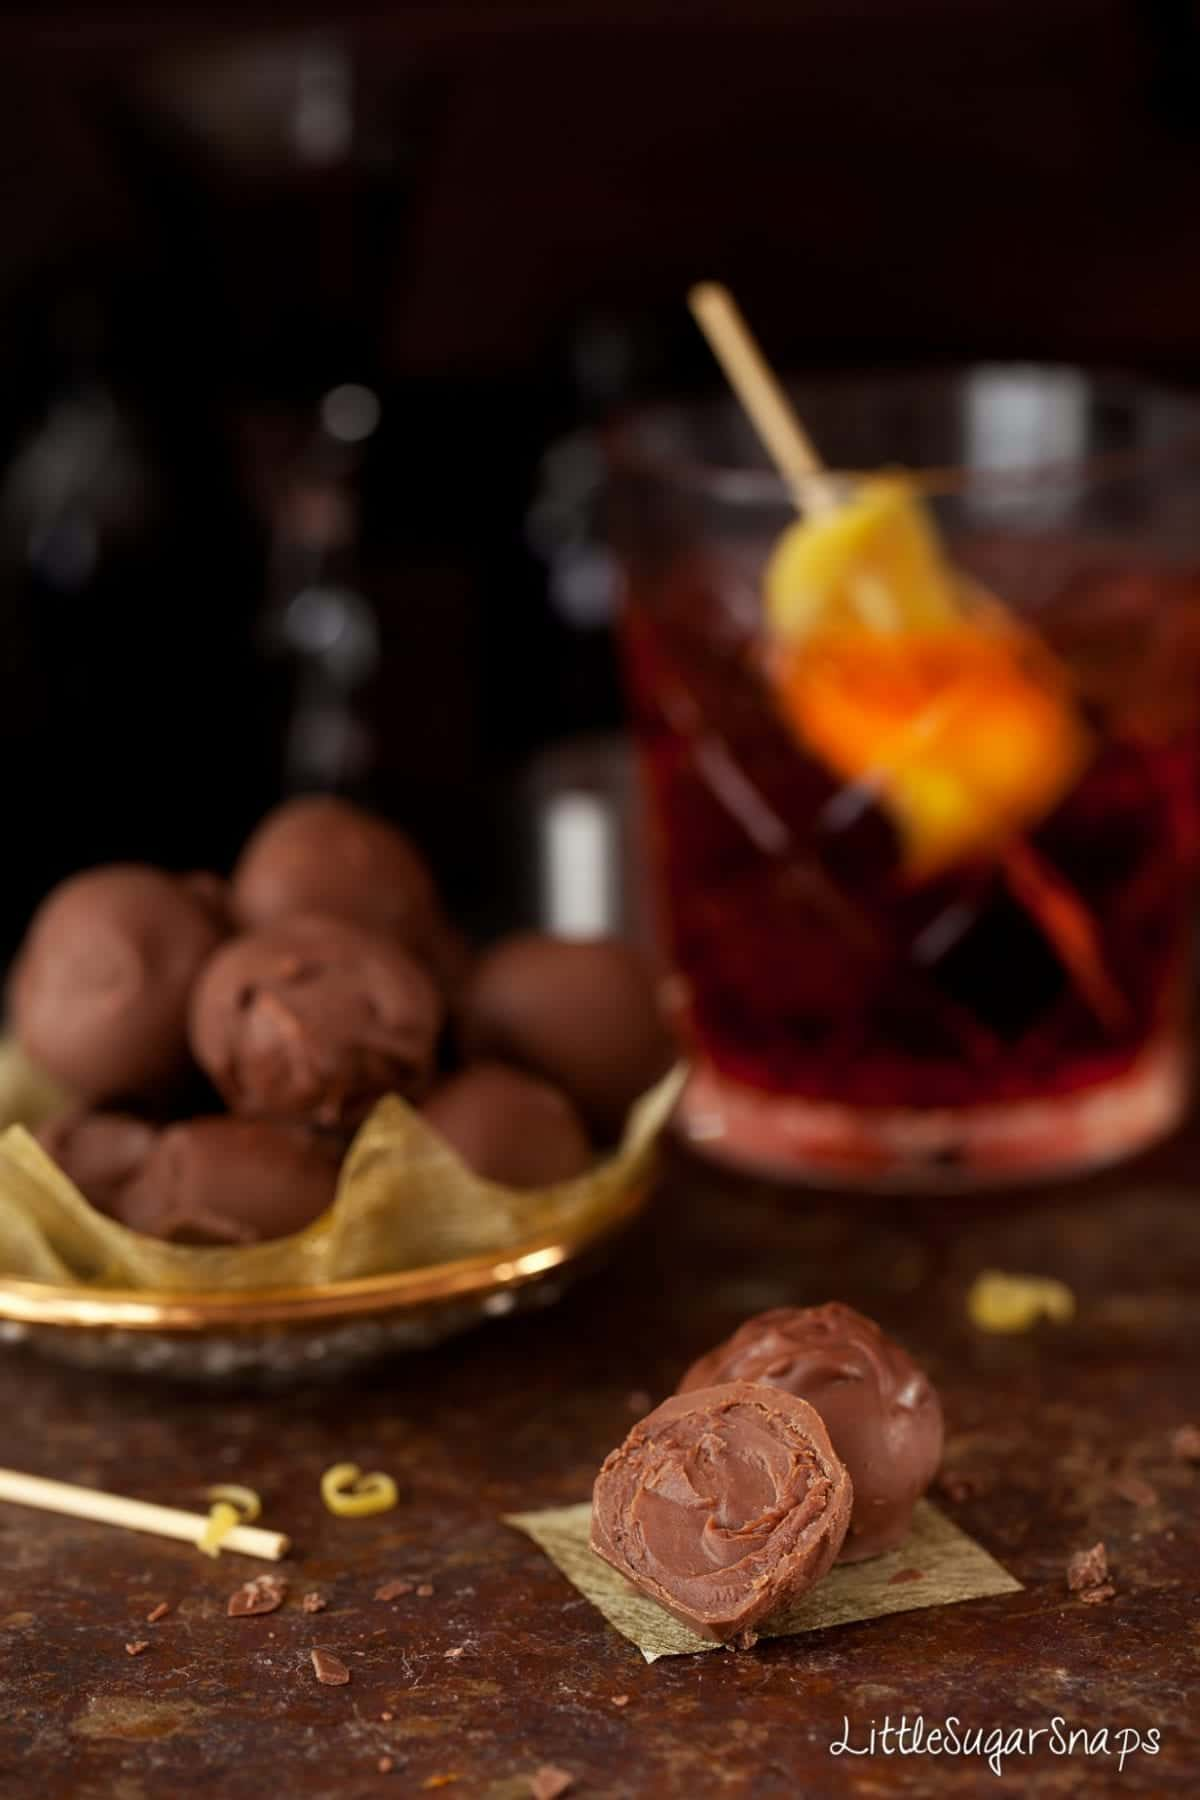 A bitten into Negroni flavoured Truffle.